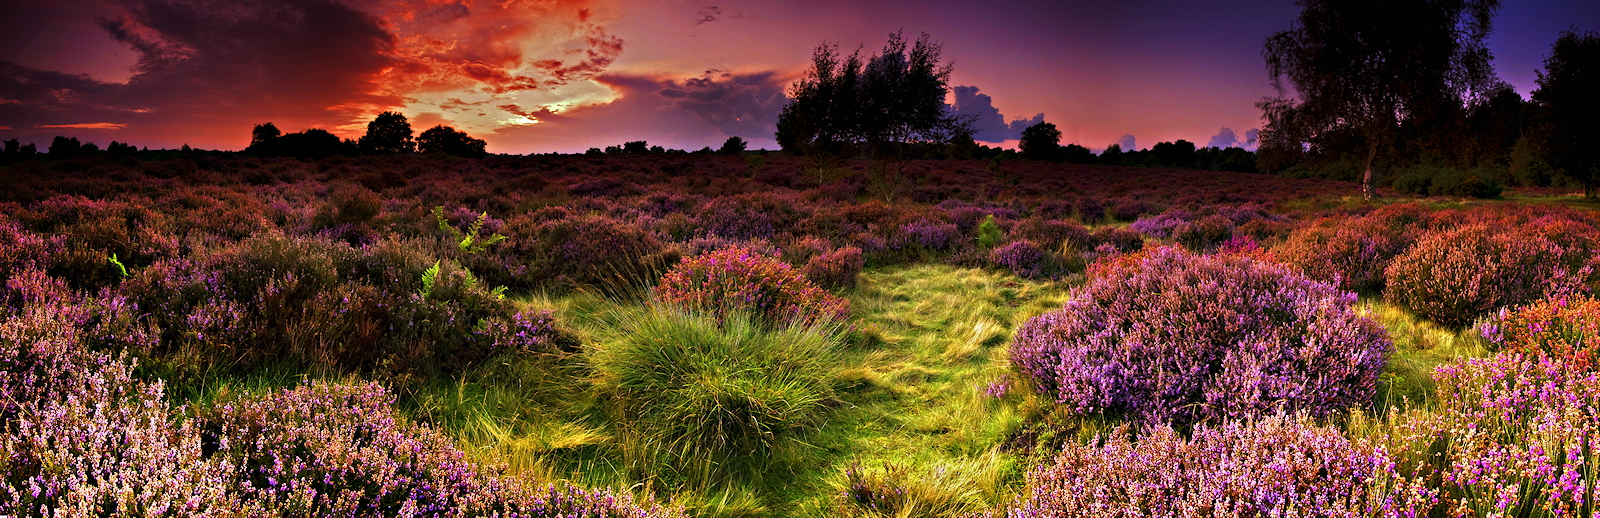 Dunwich Heath. by Wayne4585